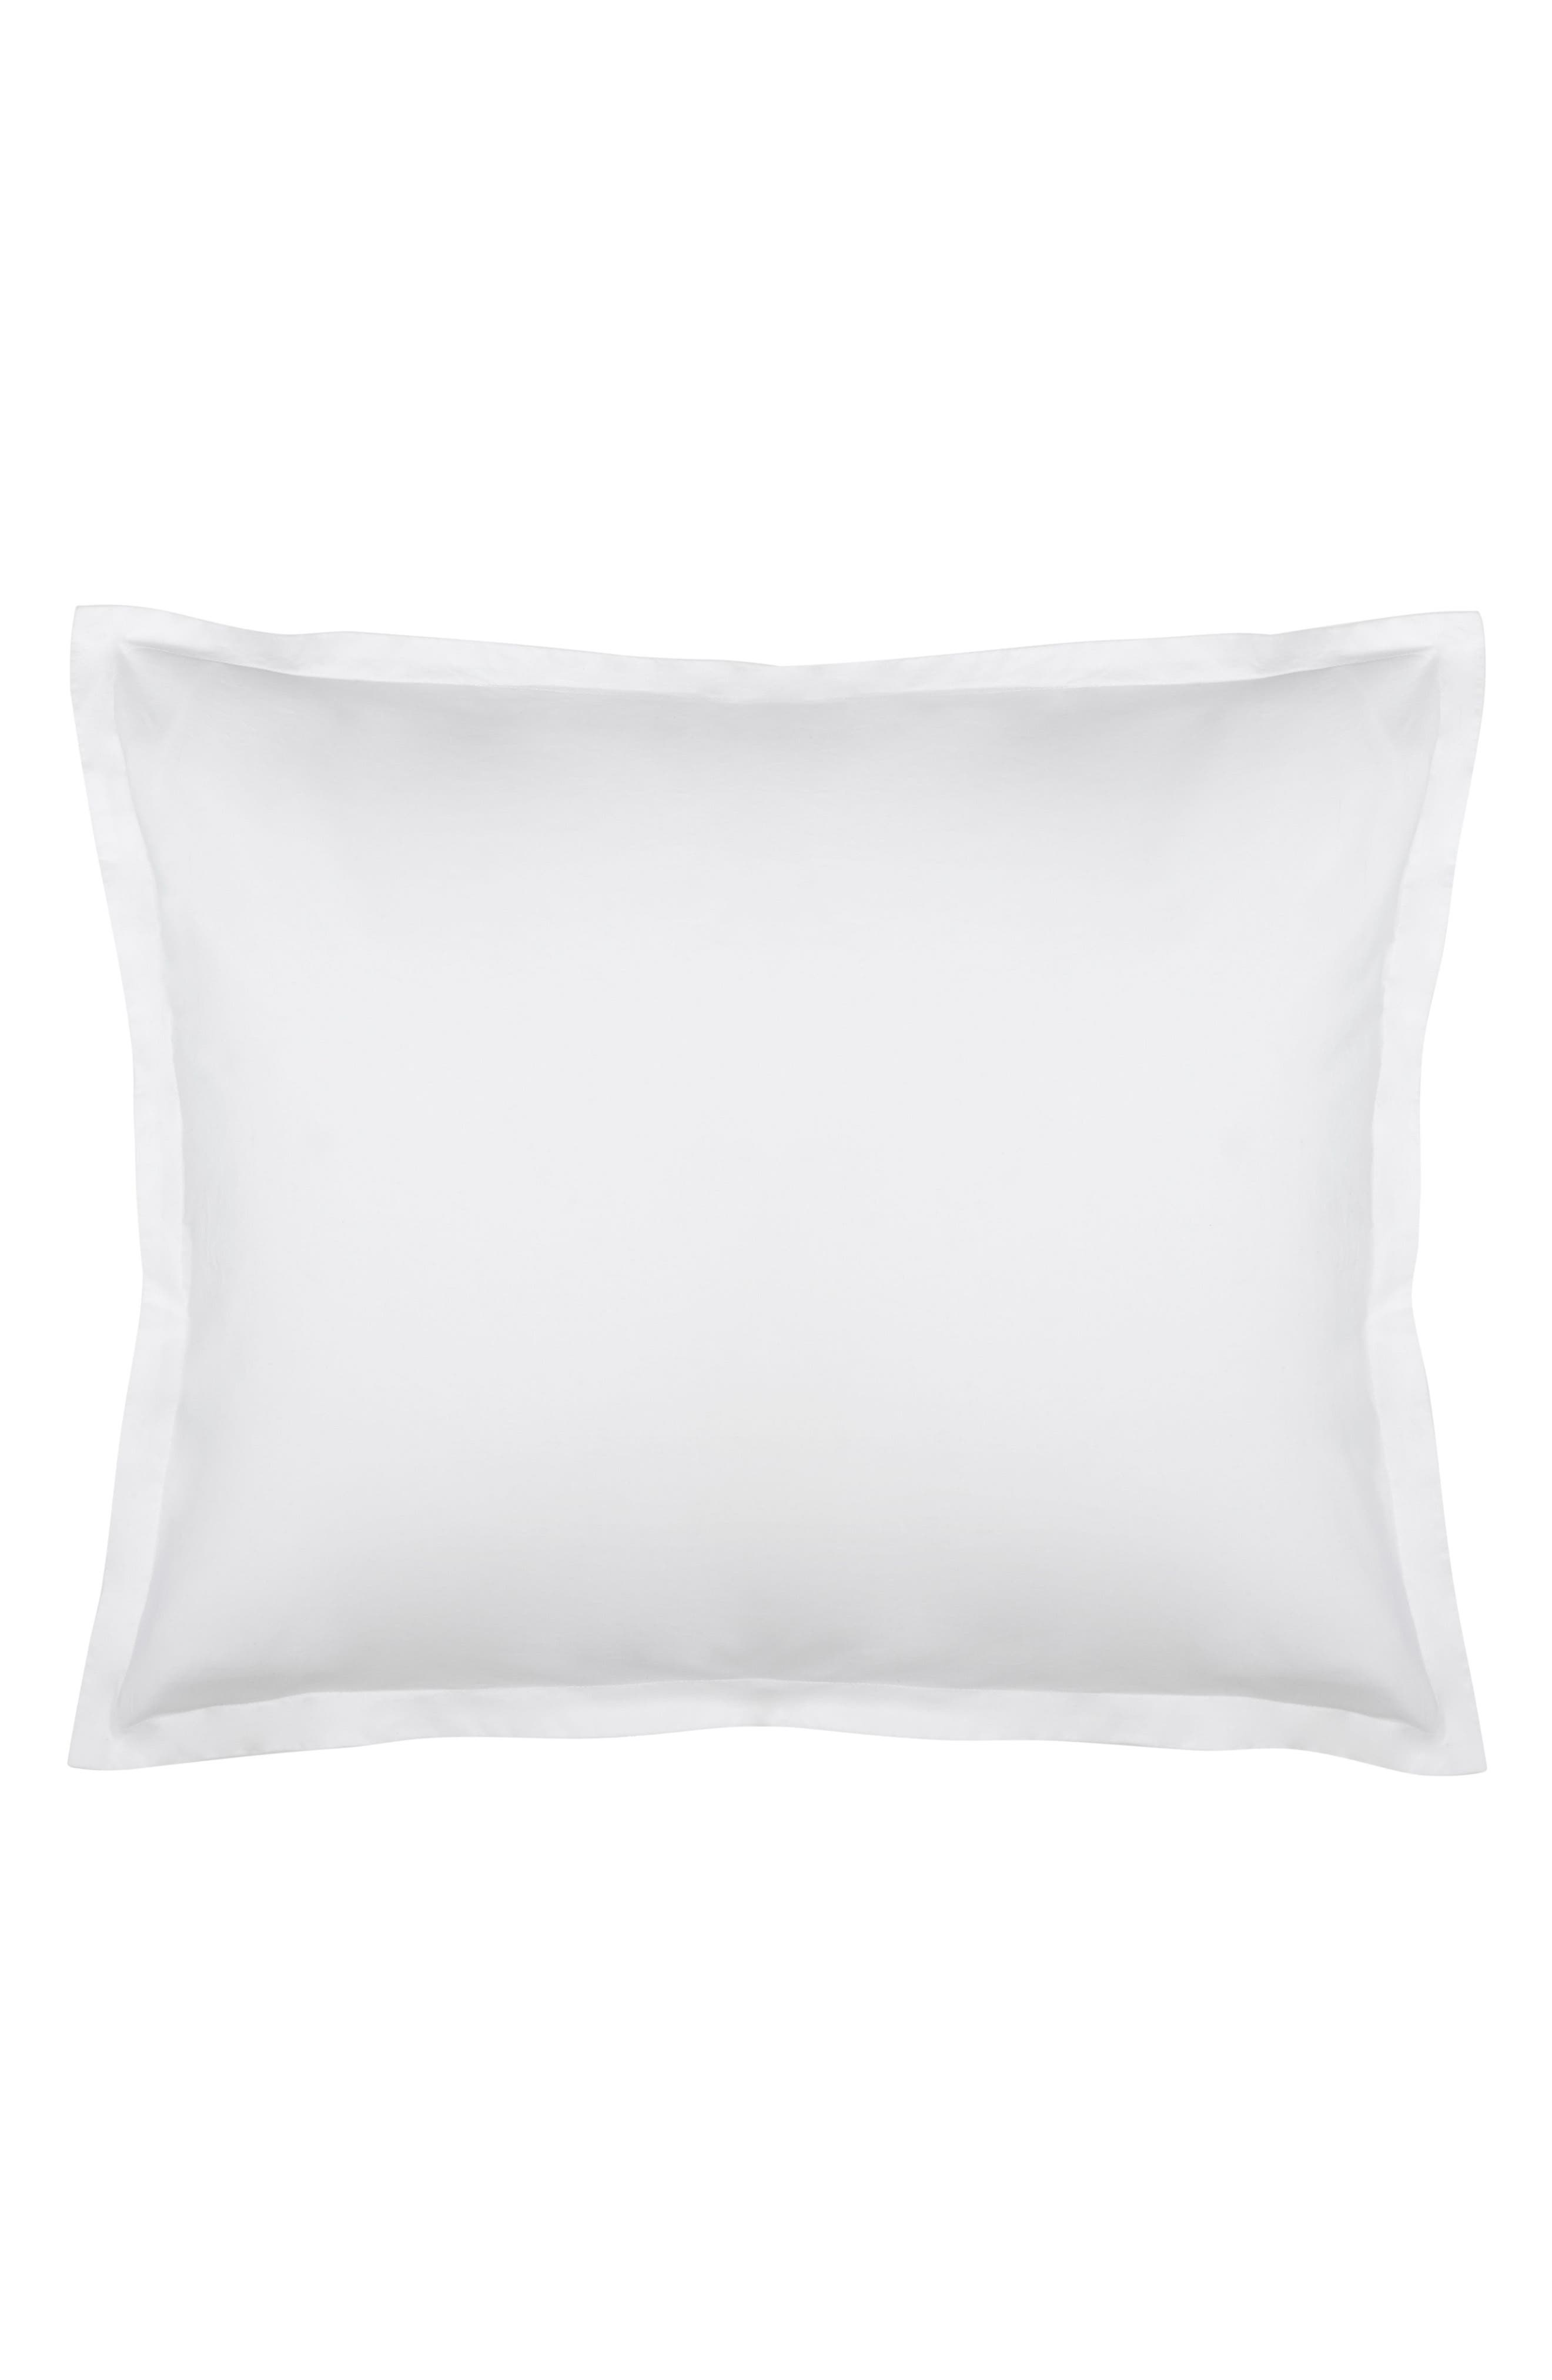 Main Image - KASSATEX Lorimer 300 Thread Count Pillow Sham